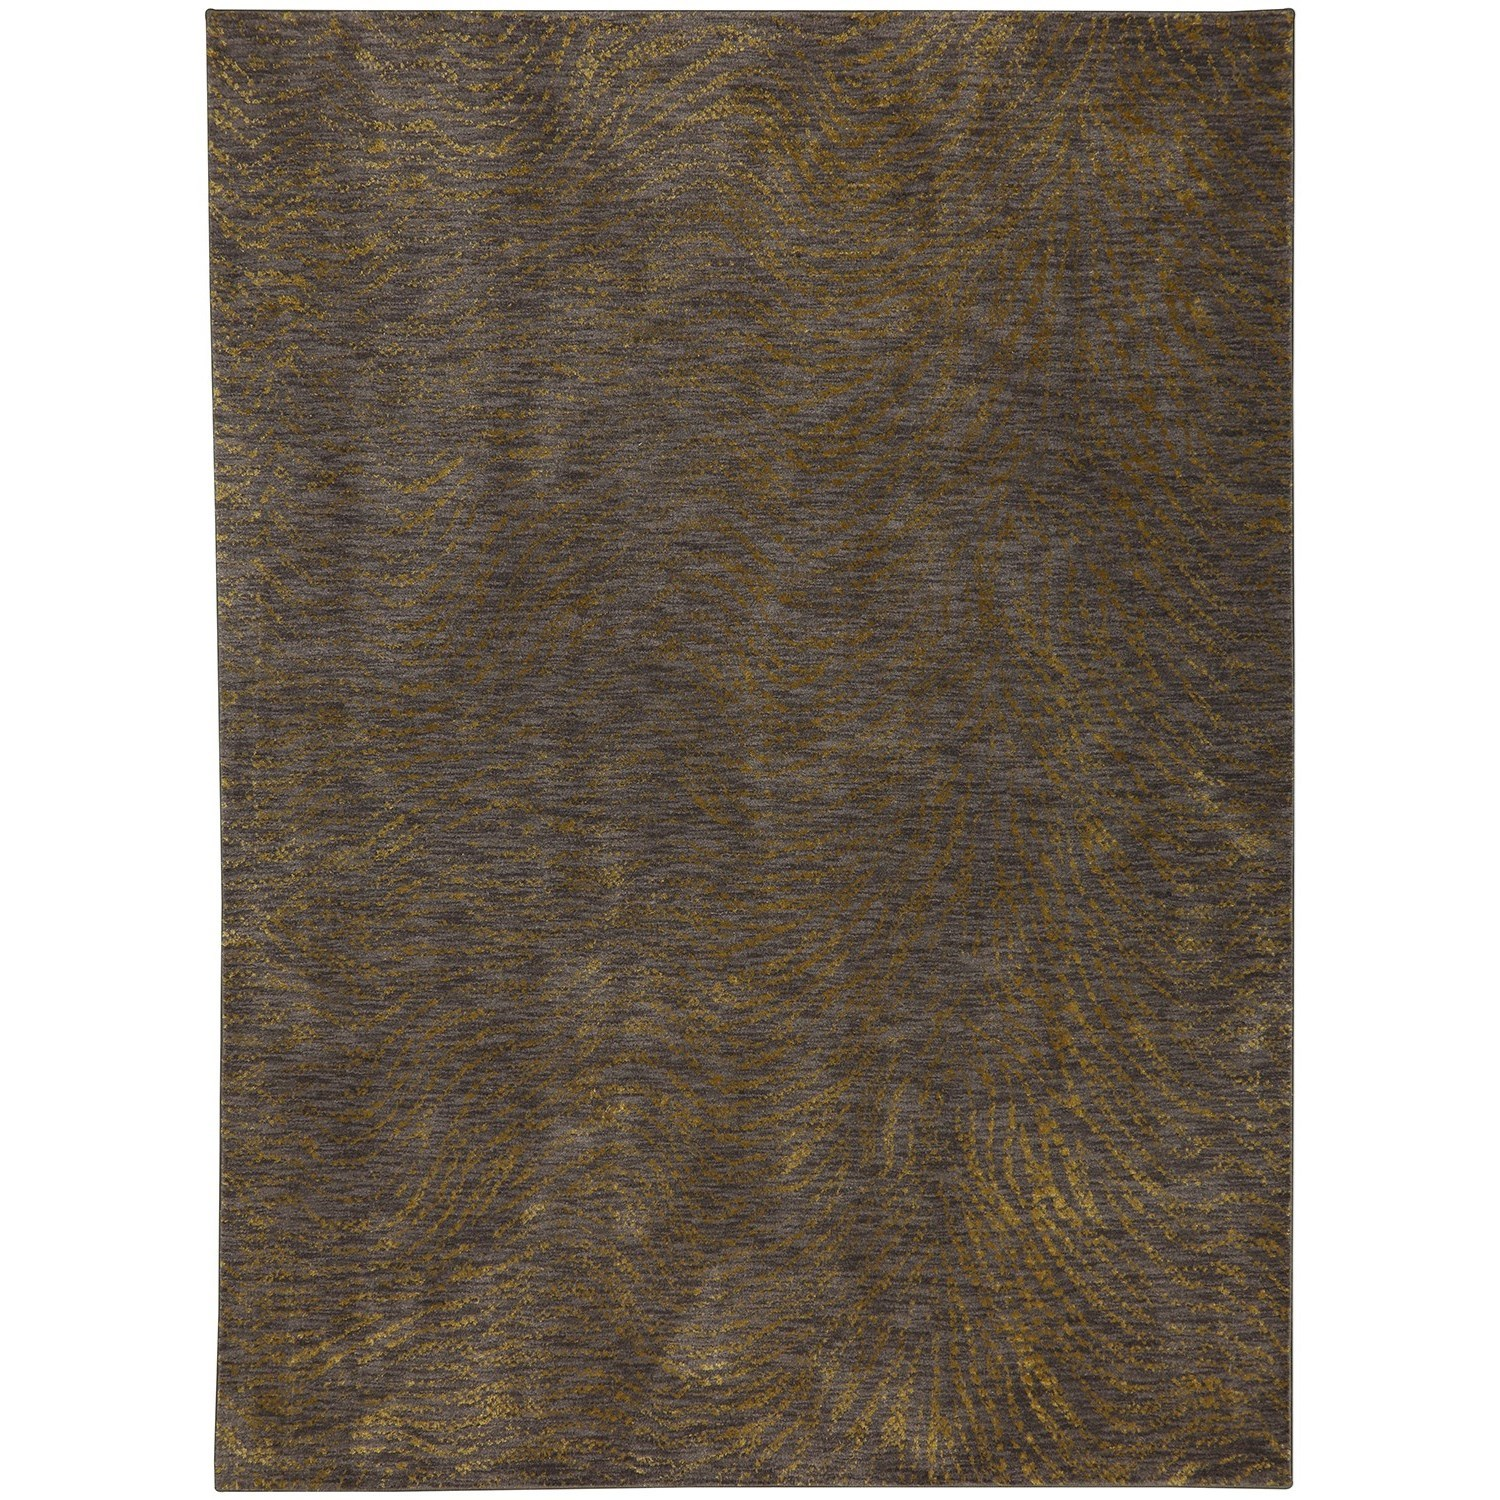 "Enigma 9' 6""x12' 11"" Rectangle Animal Print Area Ru by Karastan Rugs at Darvin Furniture"